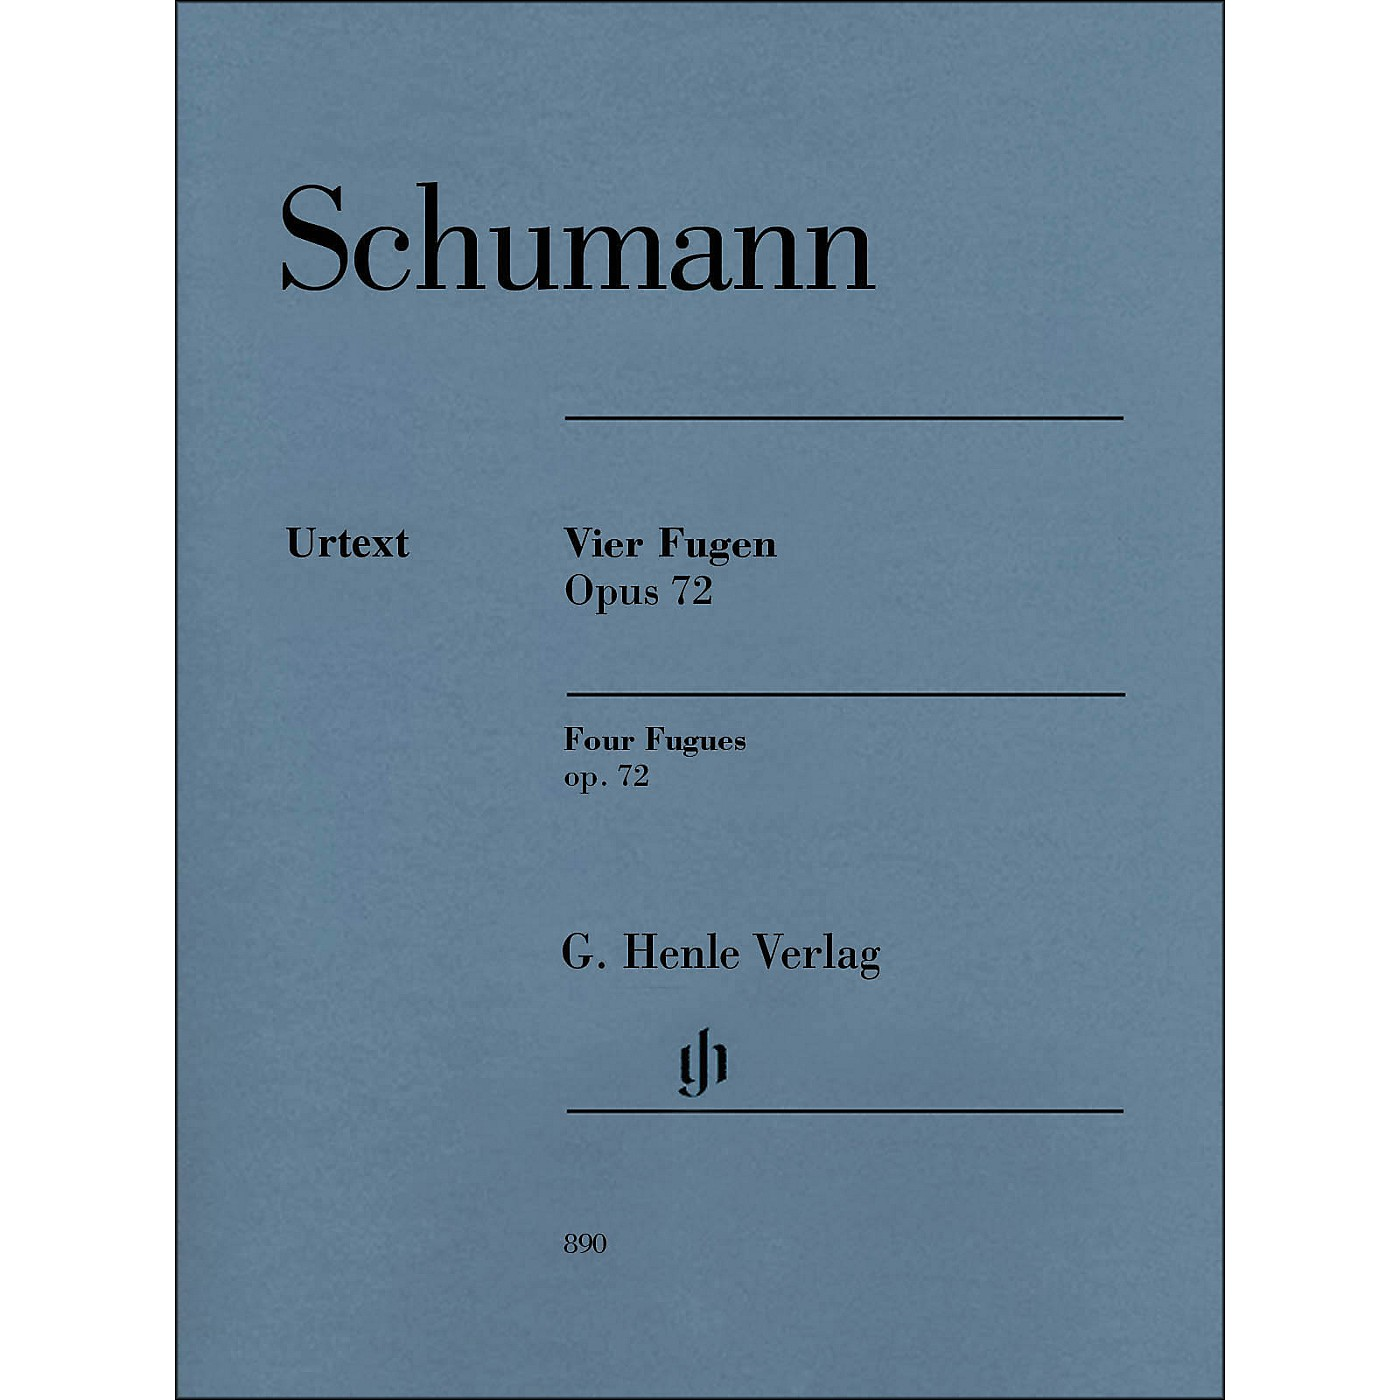 G. Henle Verlag 4 Fugues Op. 72 Piano Solo By Schumann thumbnail